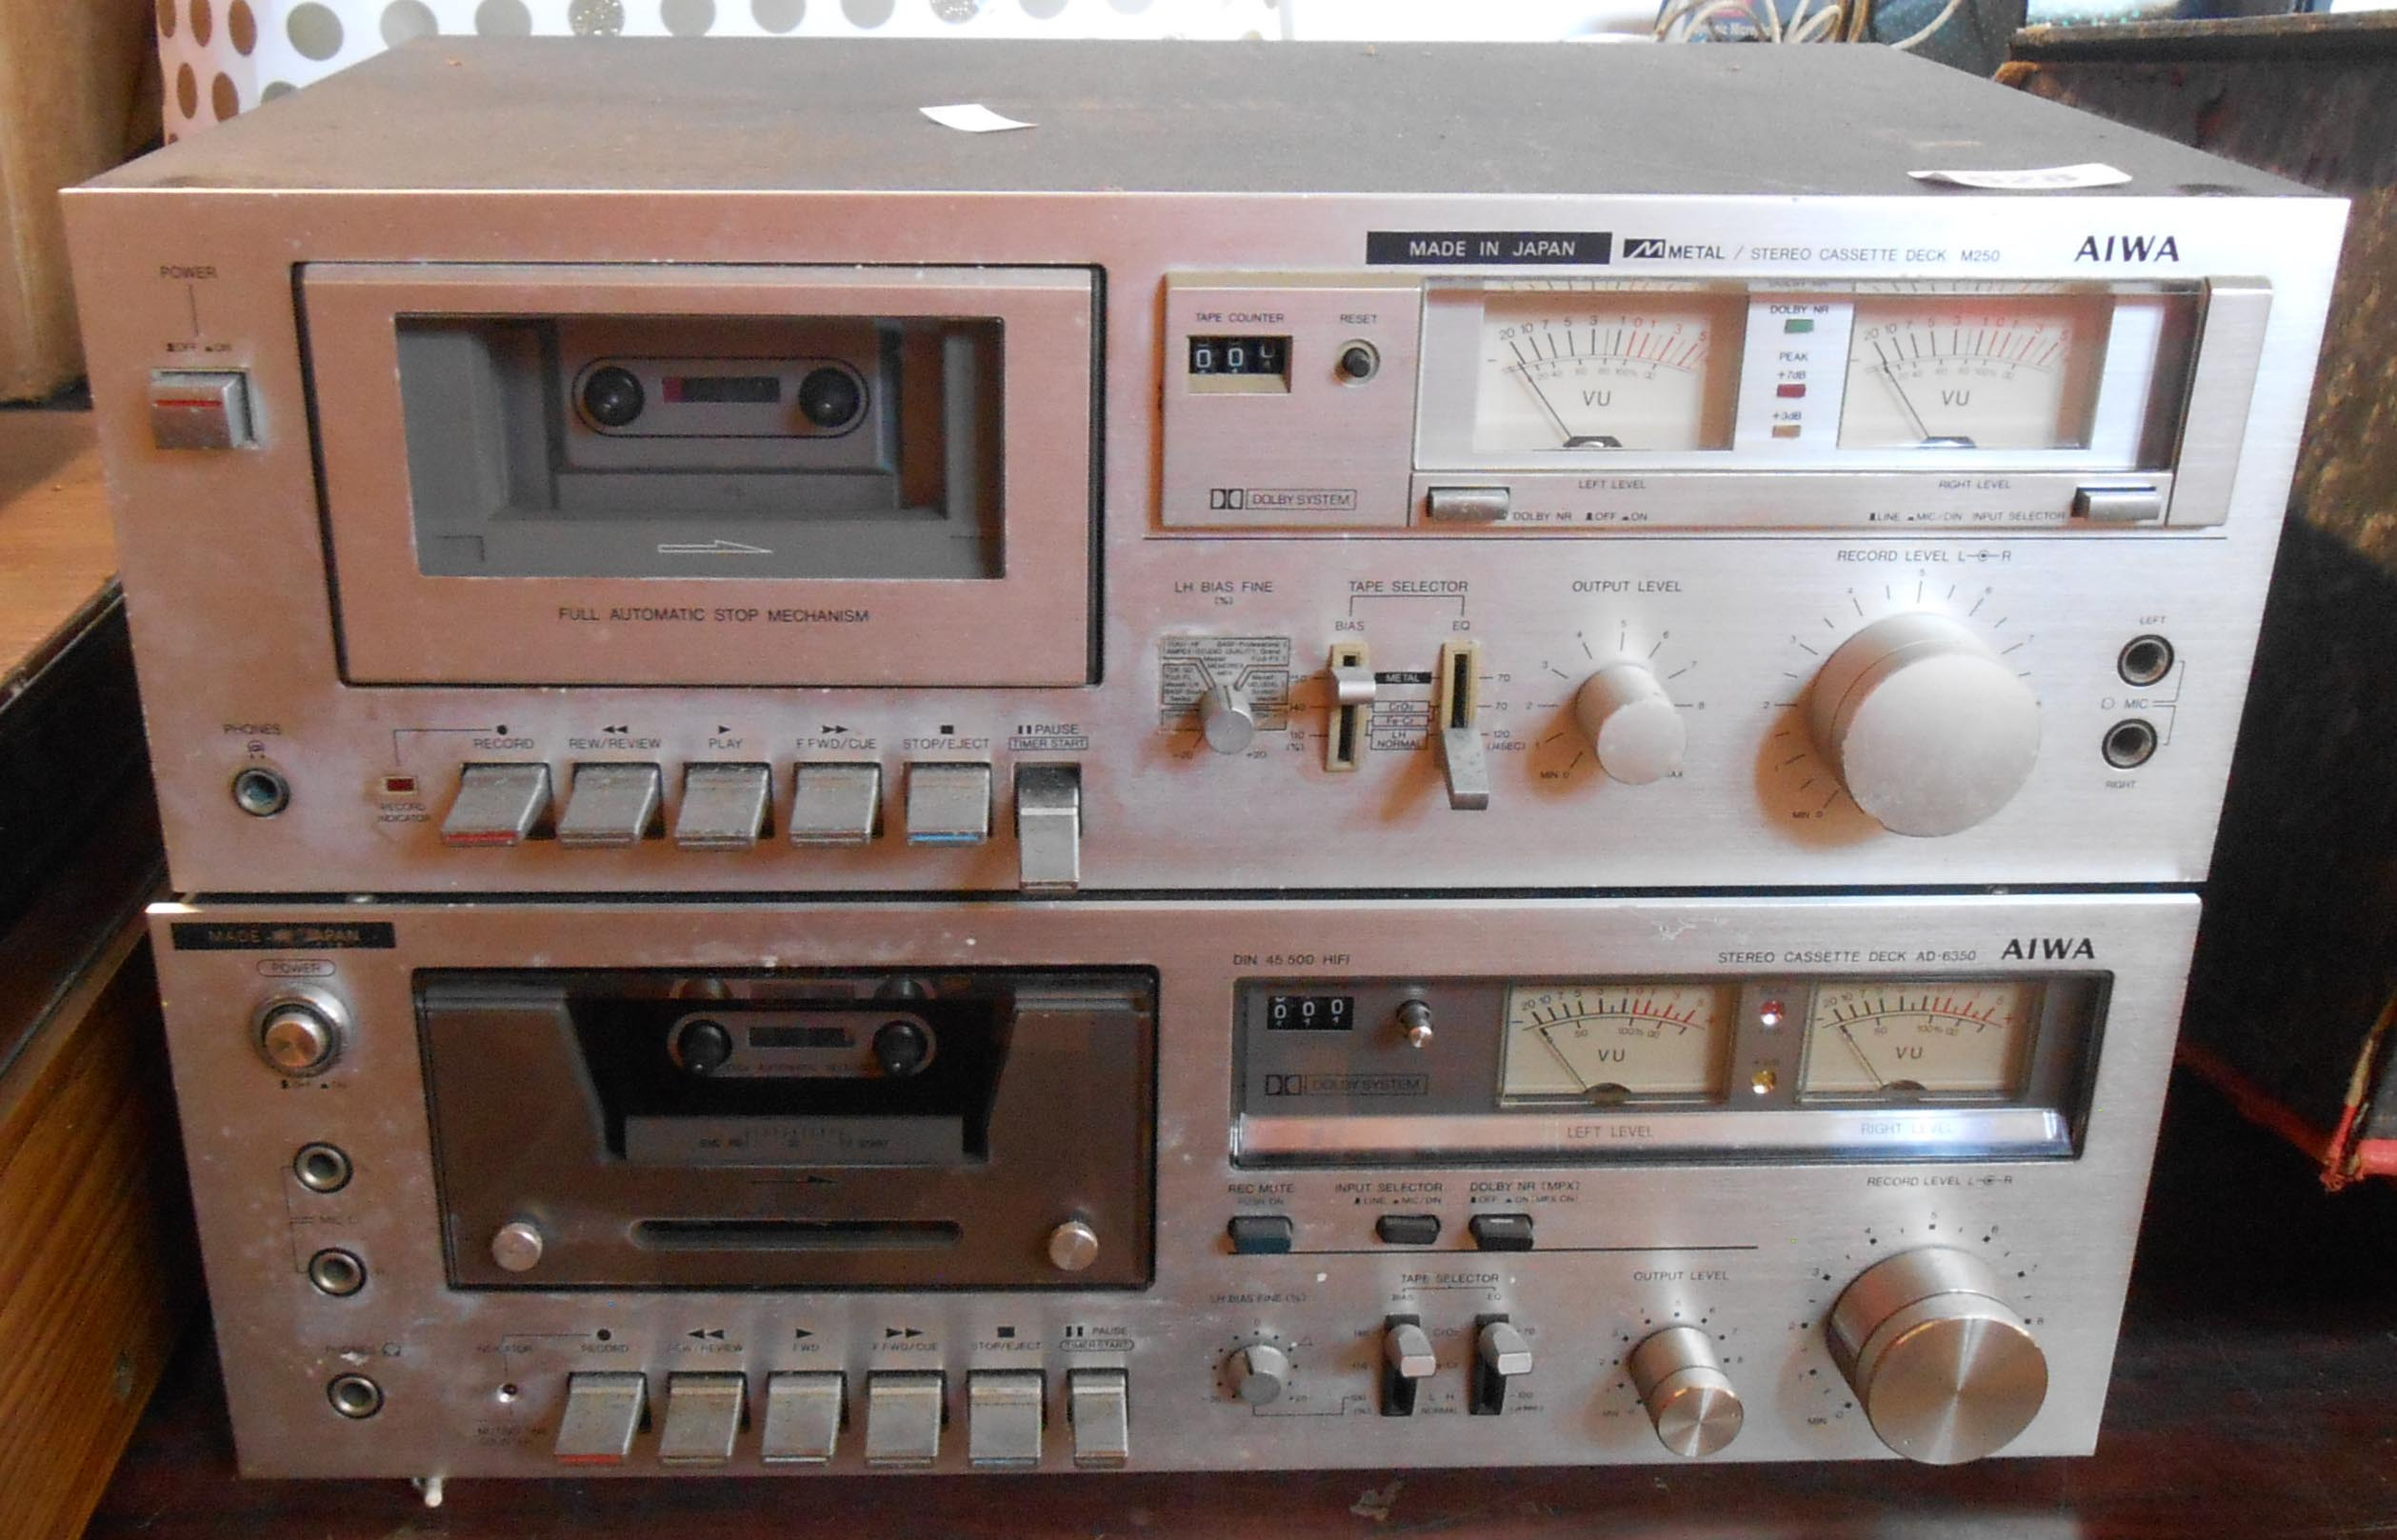 Two Aiwa stereo cassette decks, one an M250 the other AD6350